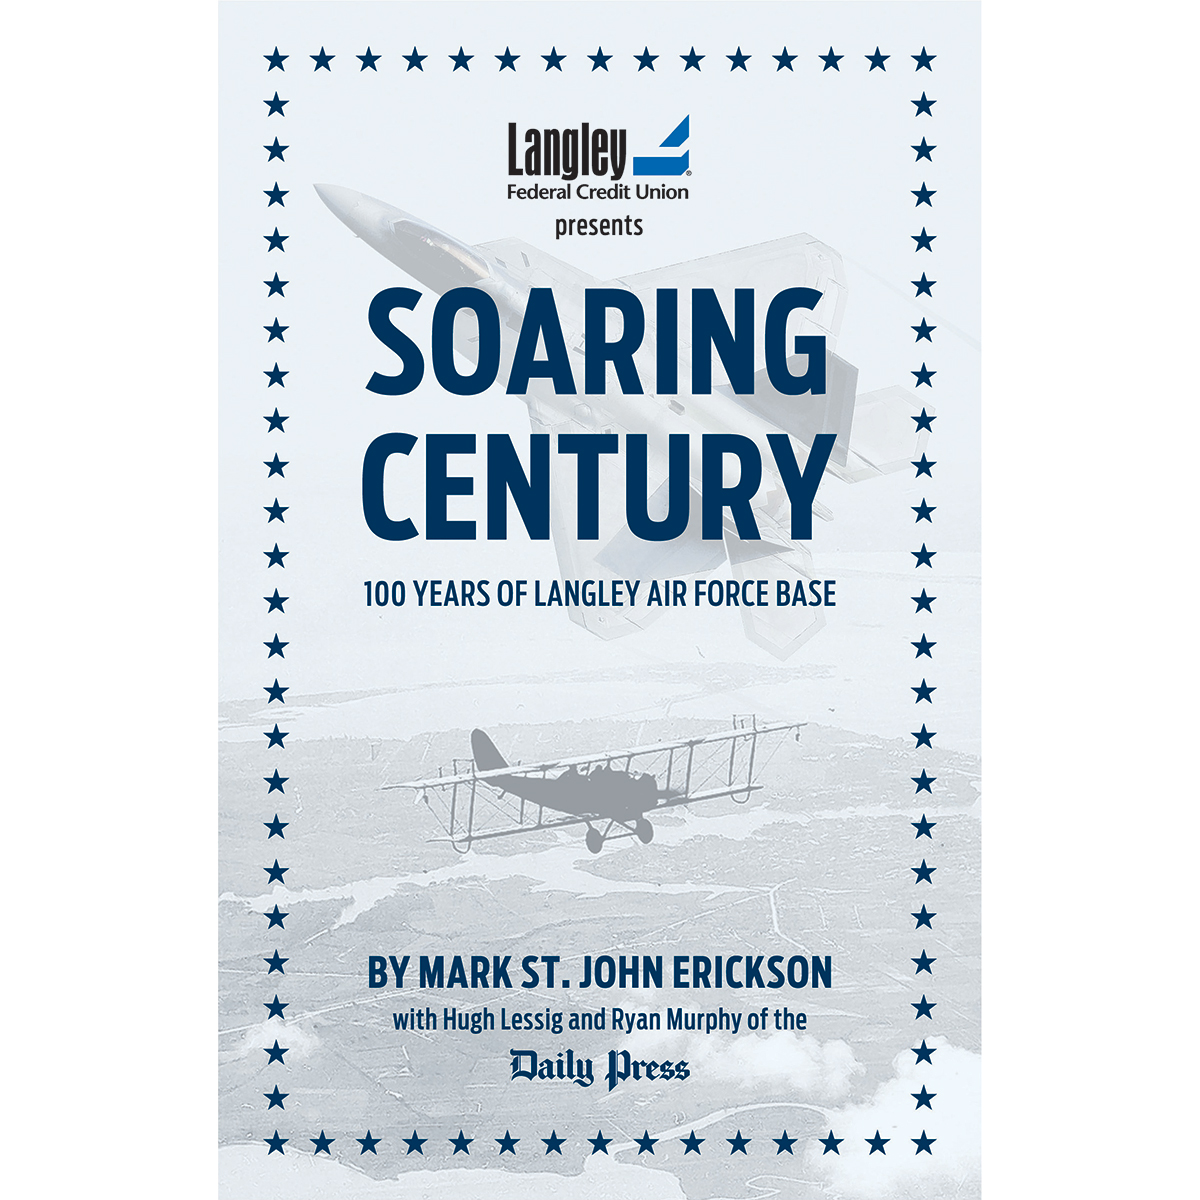 Soaring Century, 100 Years of Langley Air Force Base